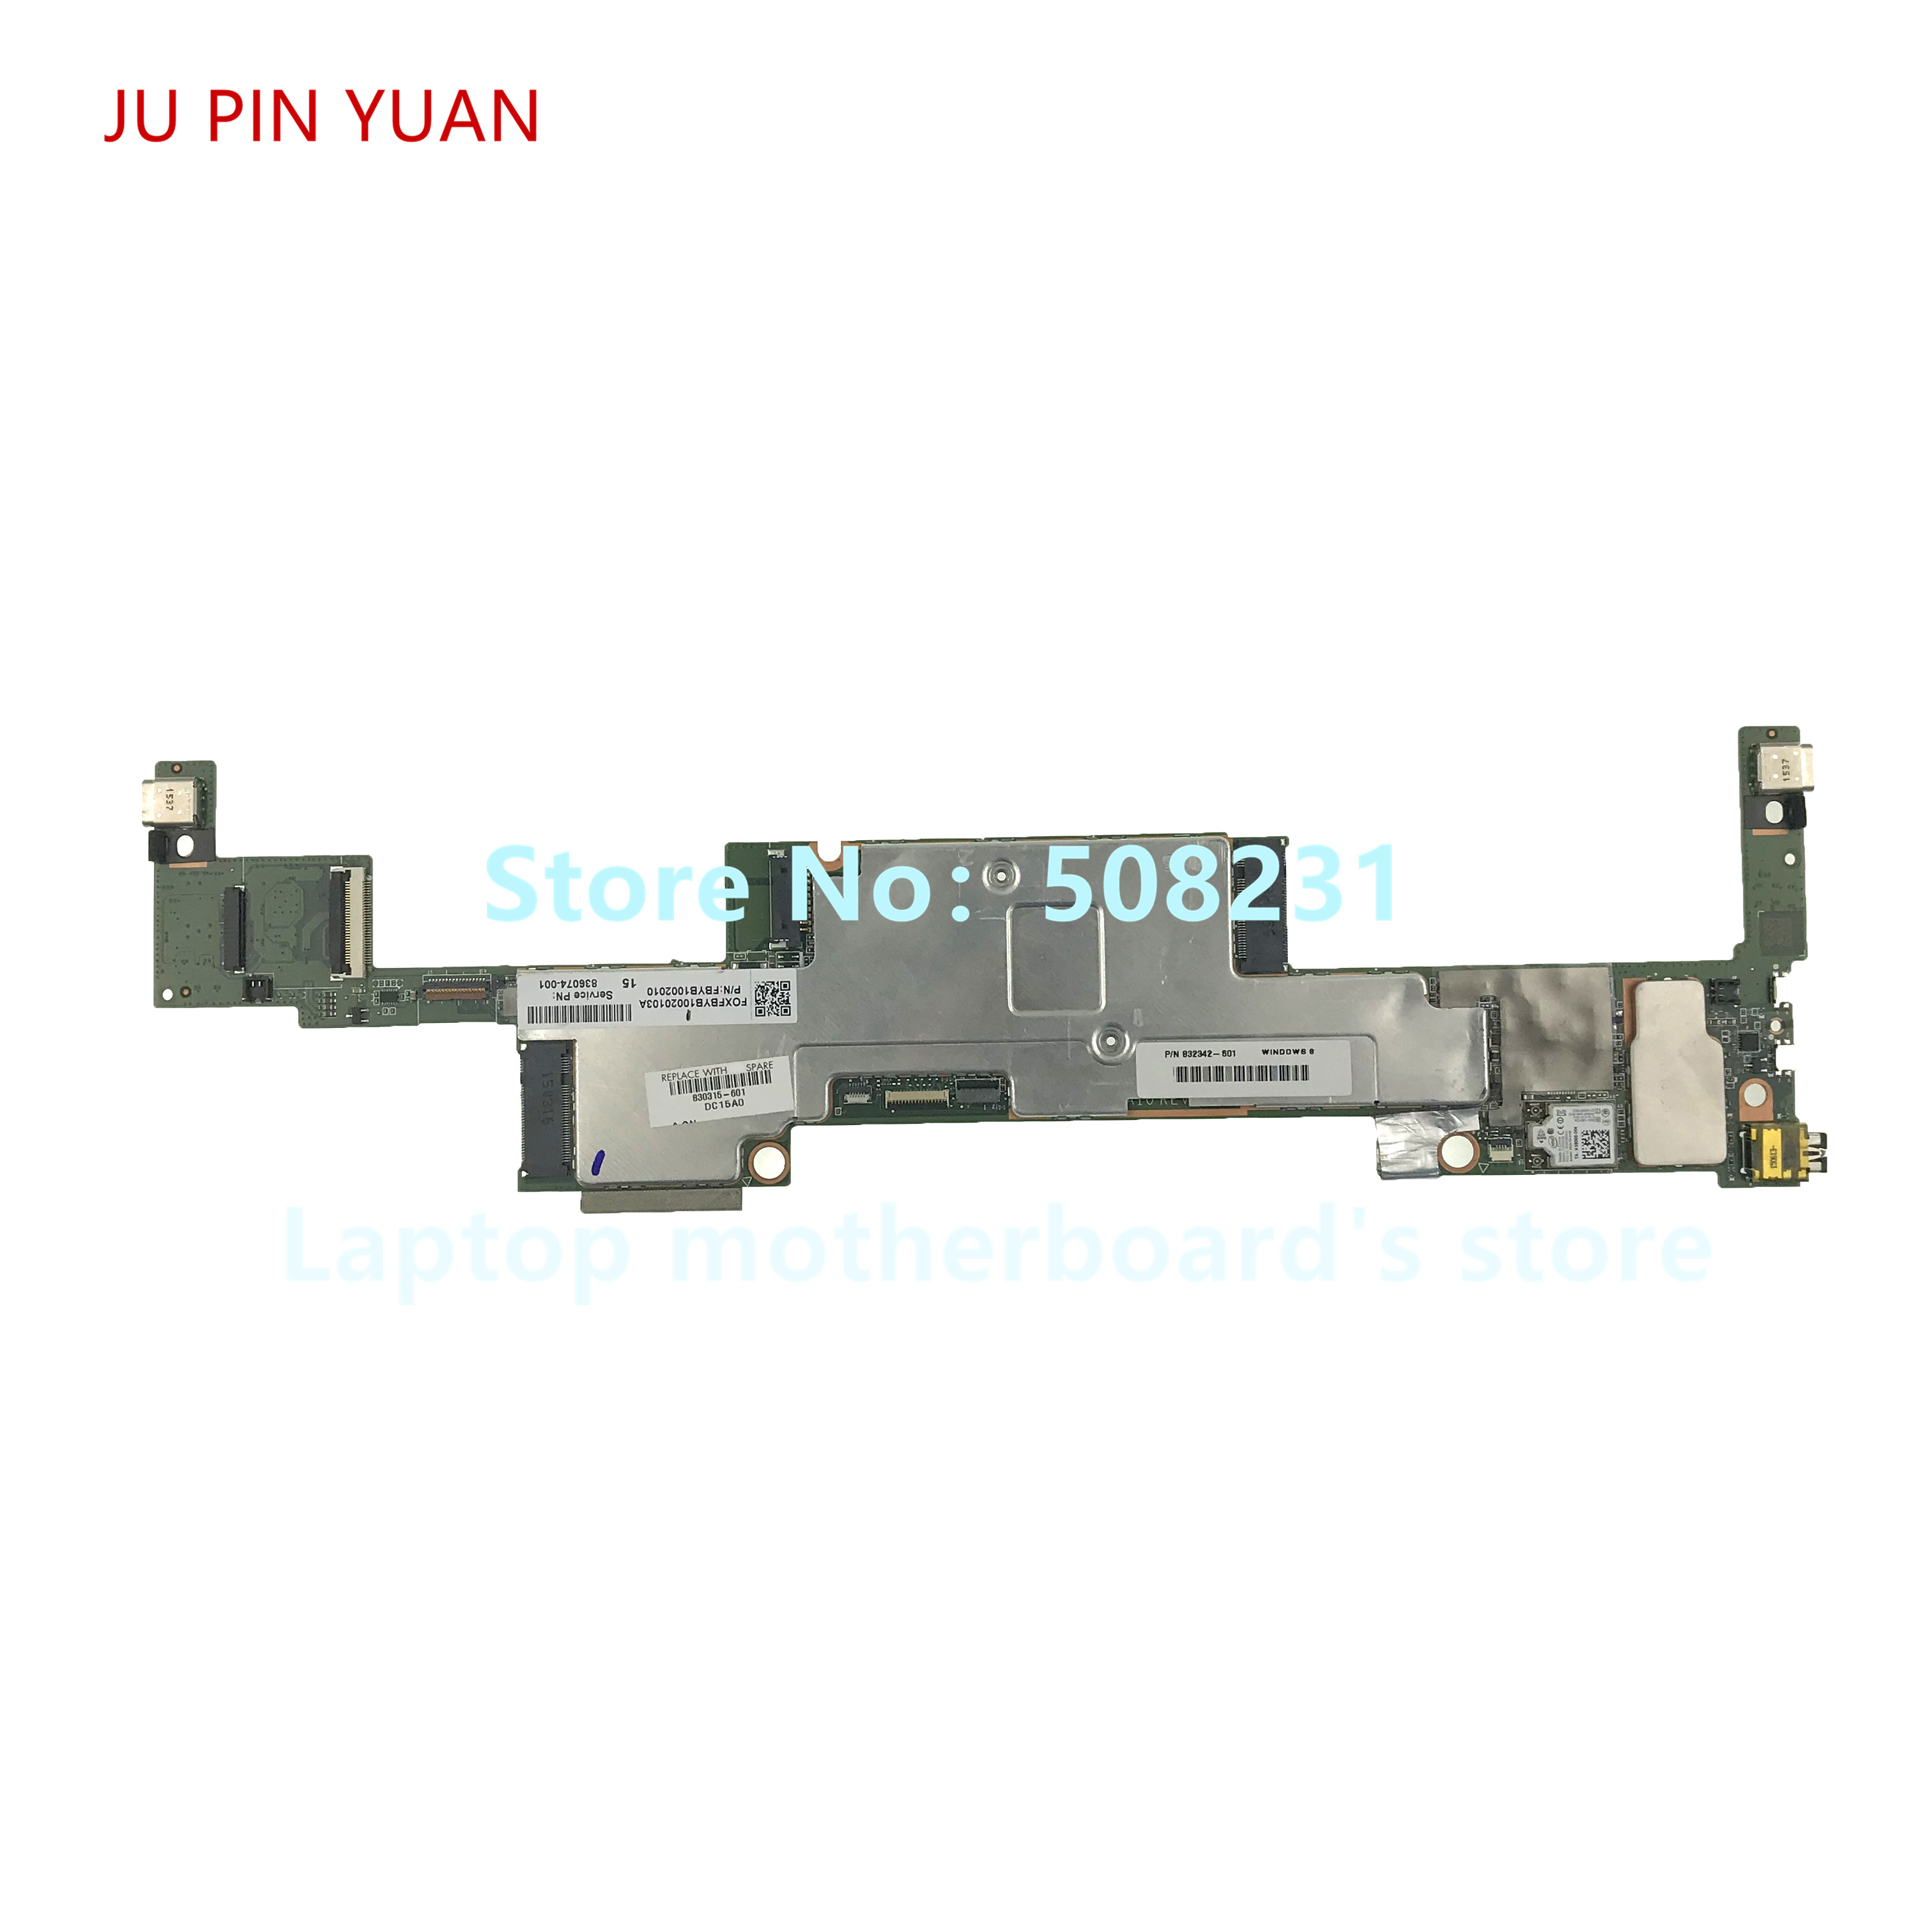 JU PIN YUAN 830315-501 830315-601 830317-001 for HP Spectre x2 Detachable 12-a laptop motherboard M5-6Y54 8GB 100% fully Tested image